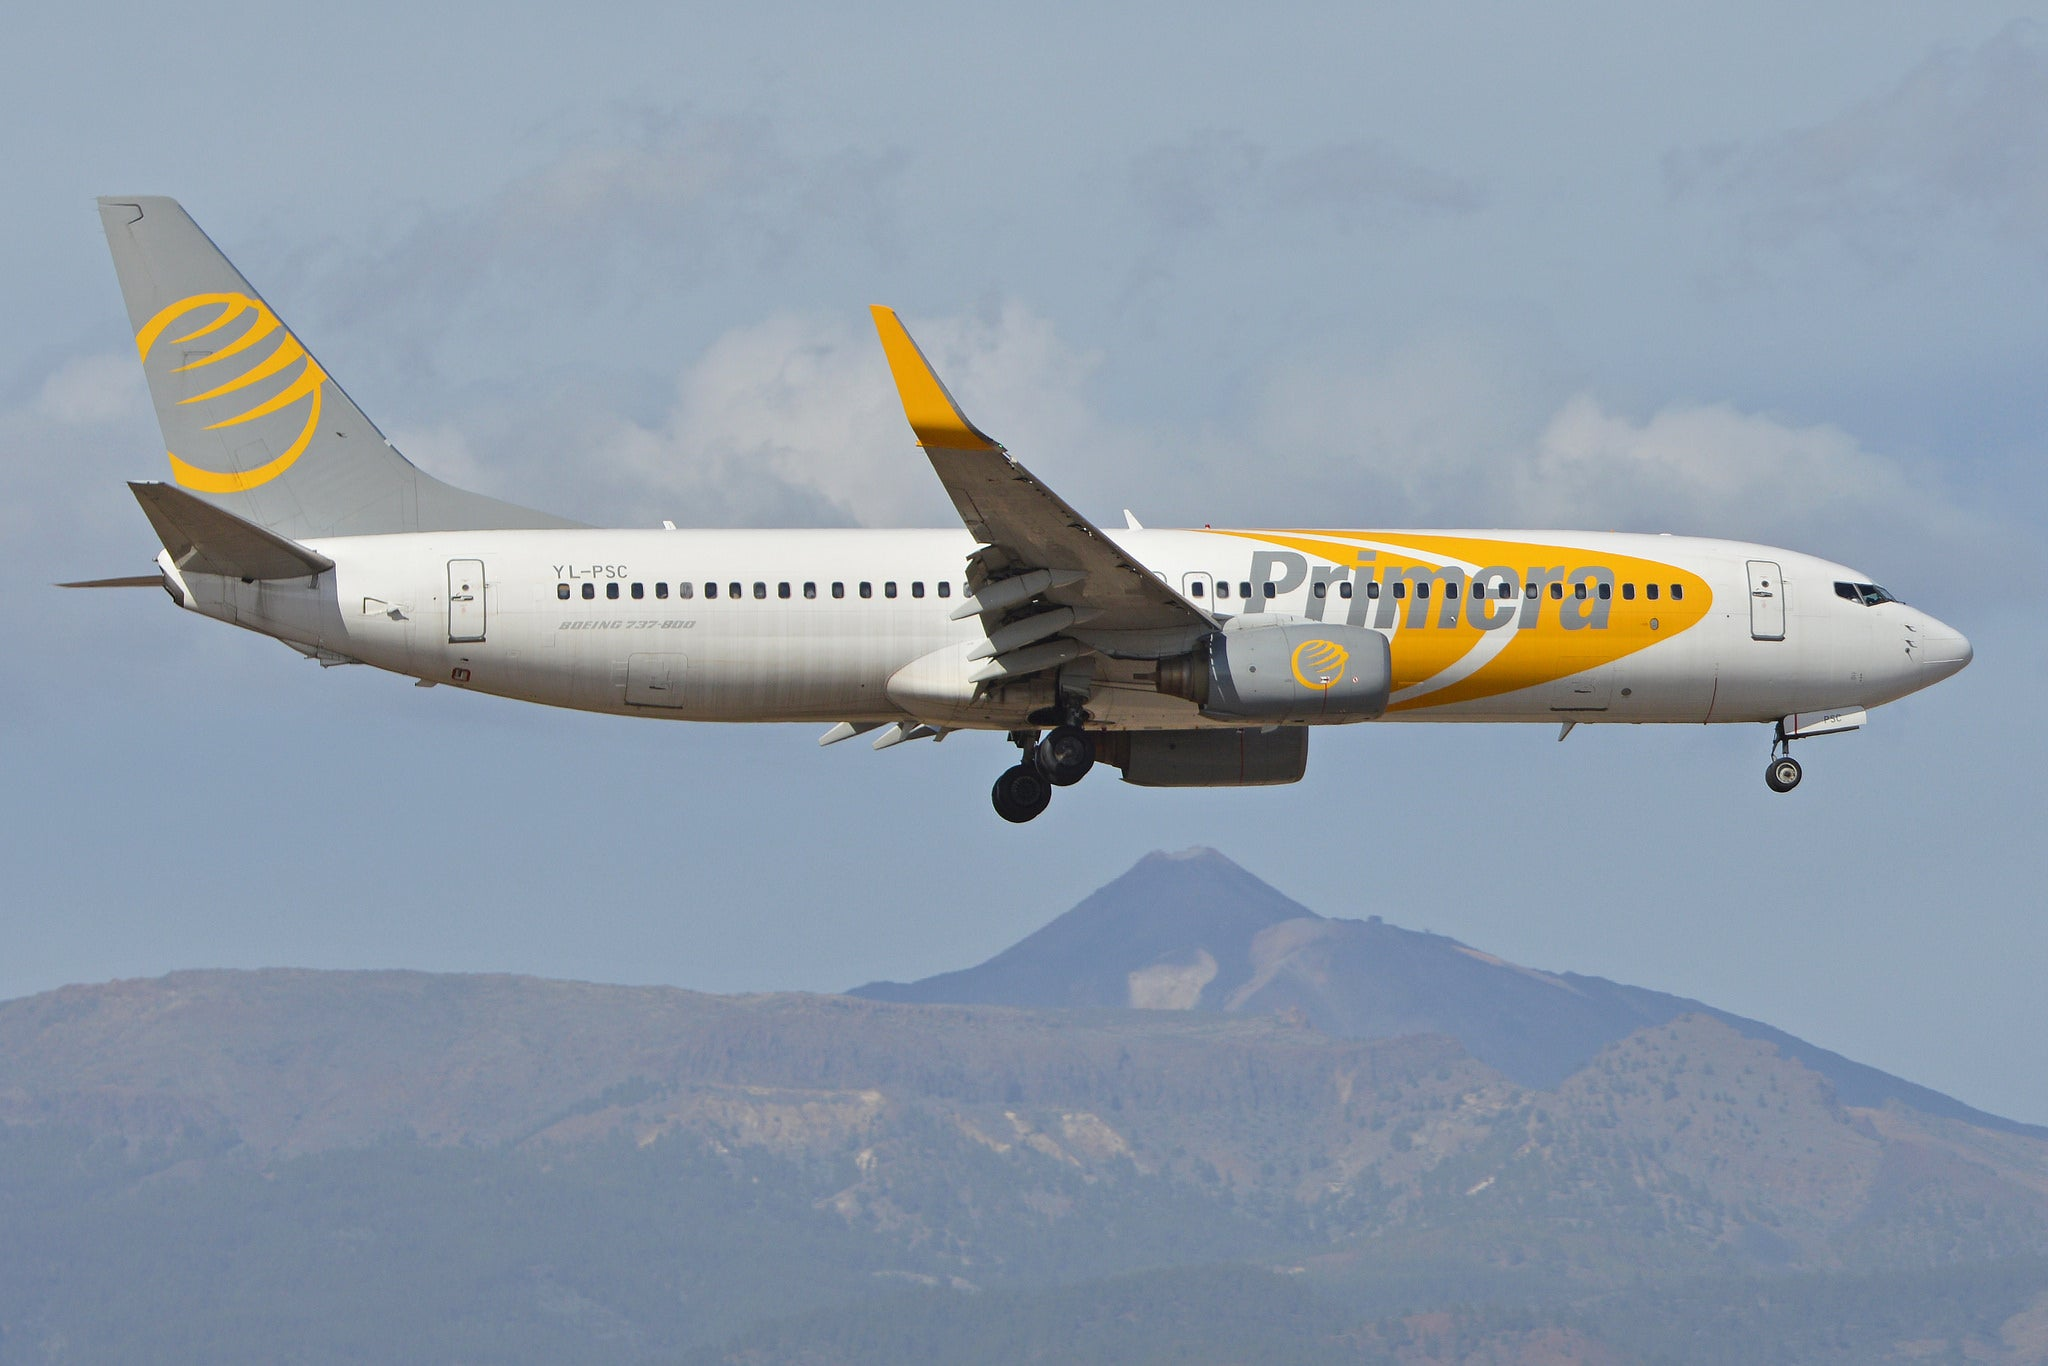 A Primera Air Boeing 737 lands in the Canary Islands.